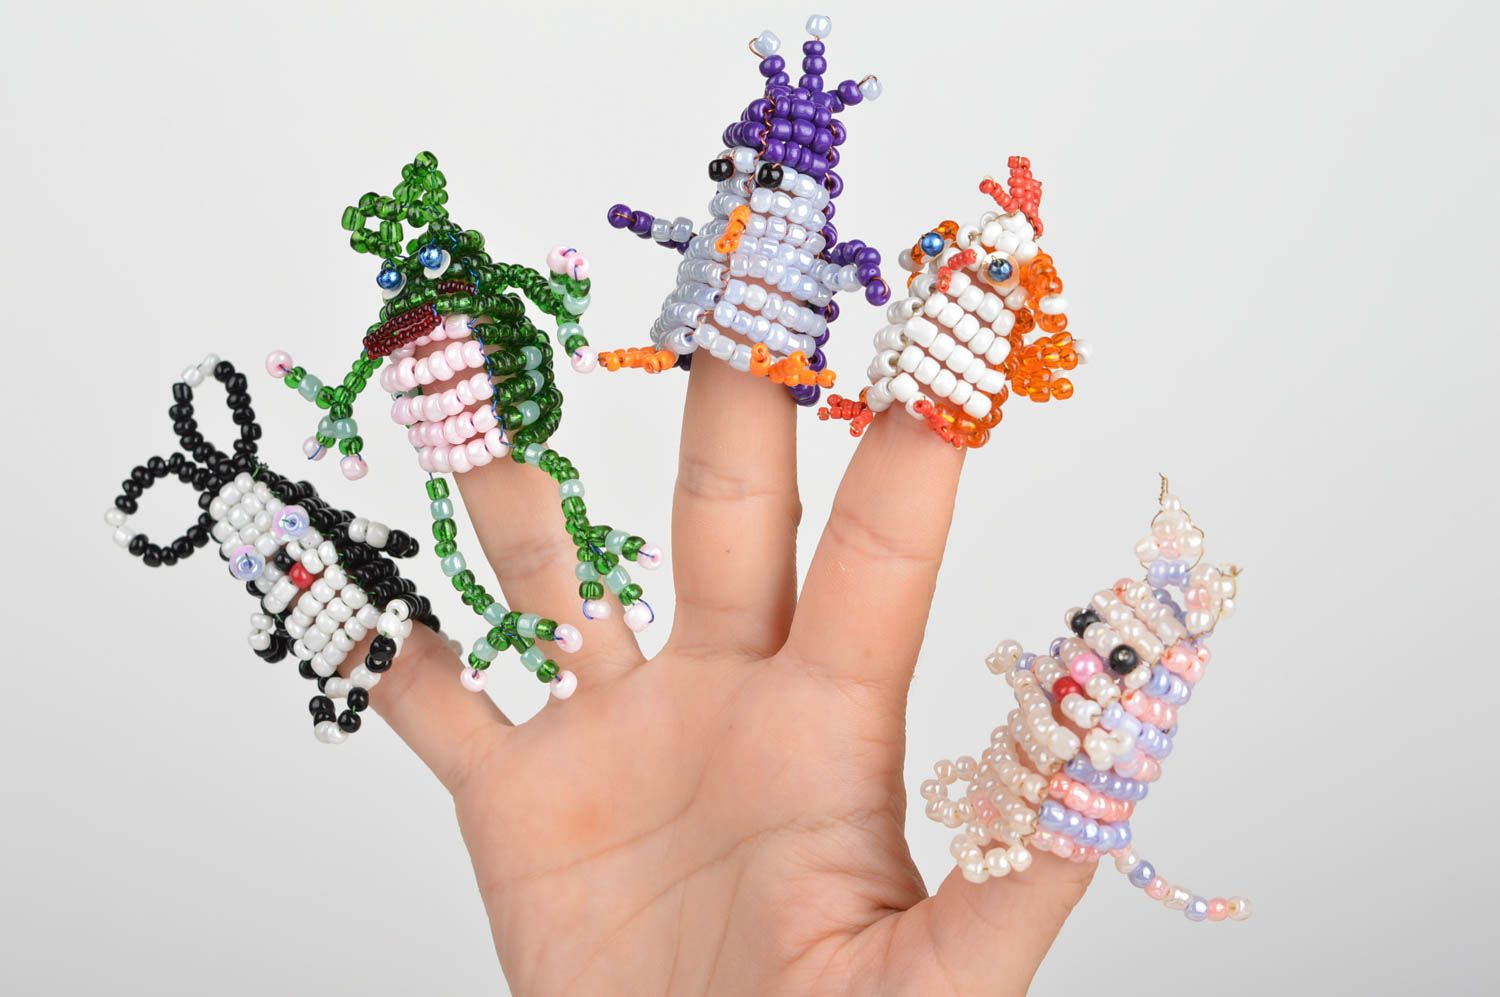 educational toys Set of 5 handmade bead woven animal finger puppets colorful for home theater - MADEheart.com